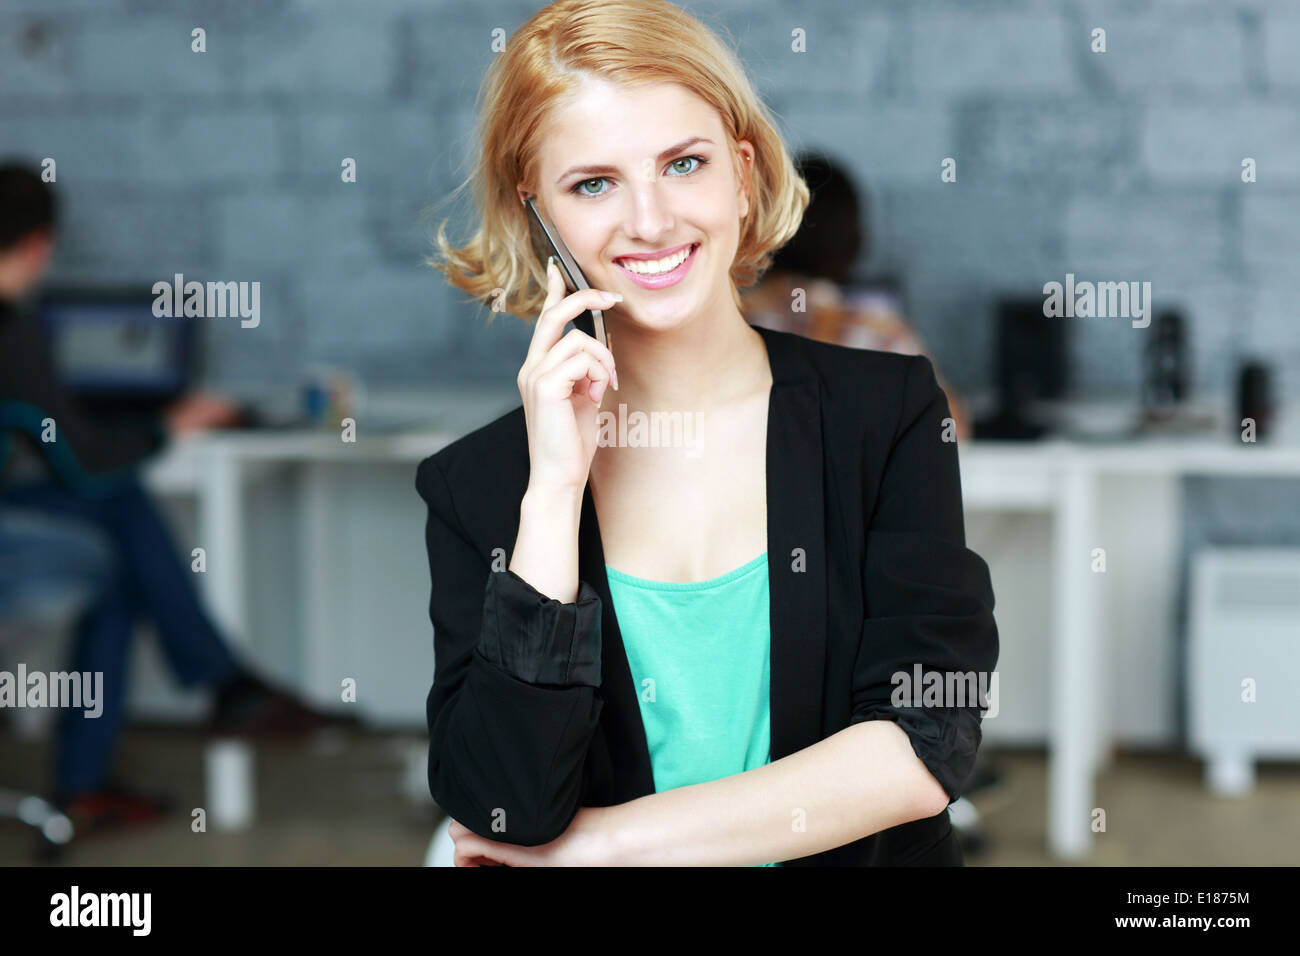 Young smiling businesswoman talking on the phone in office - Stock Image